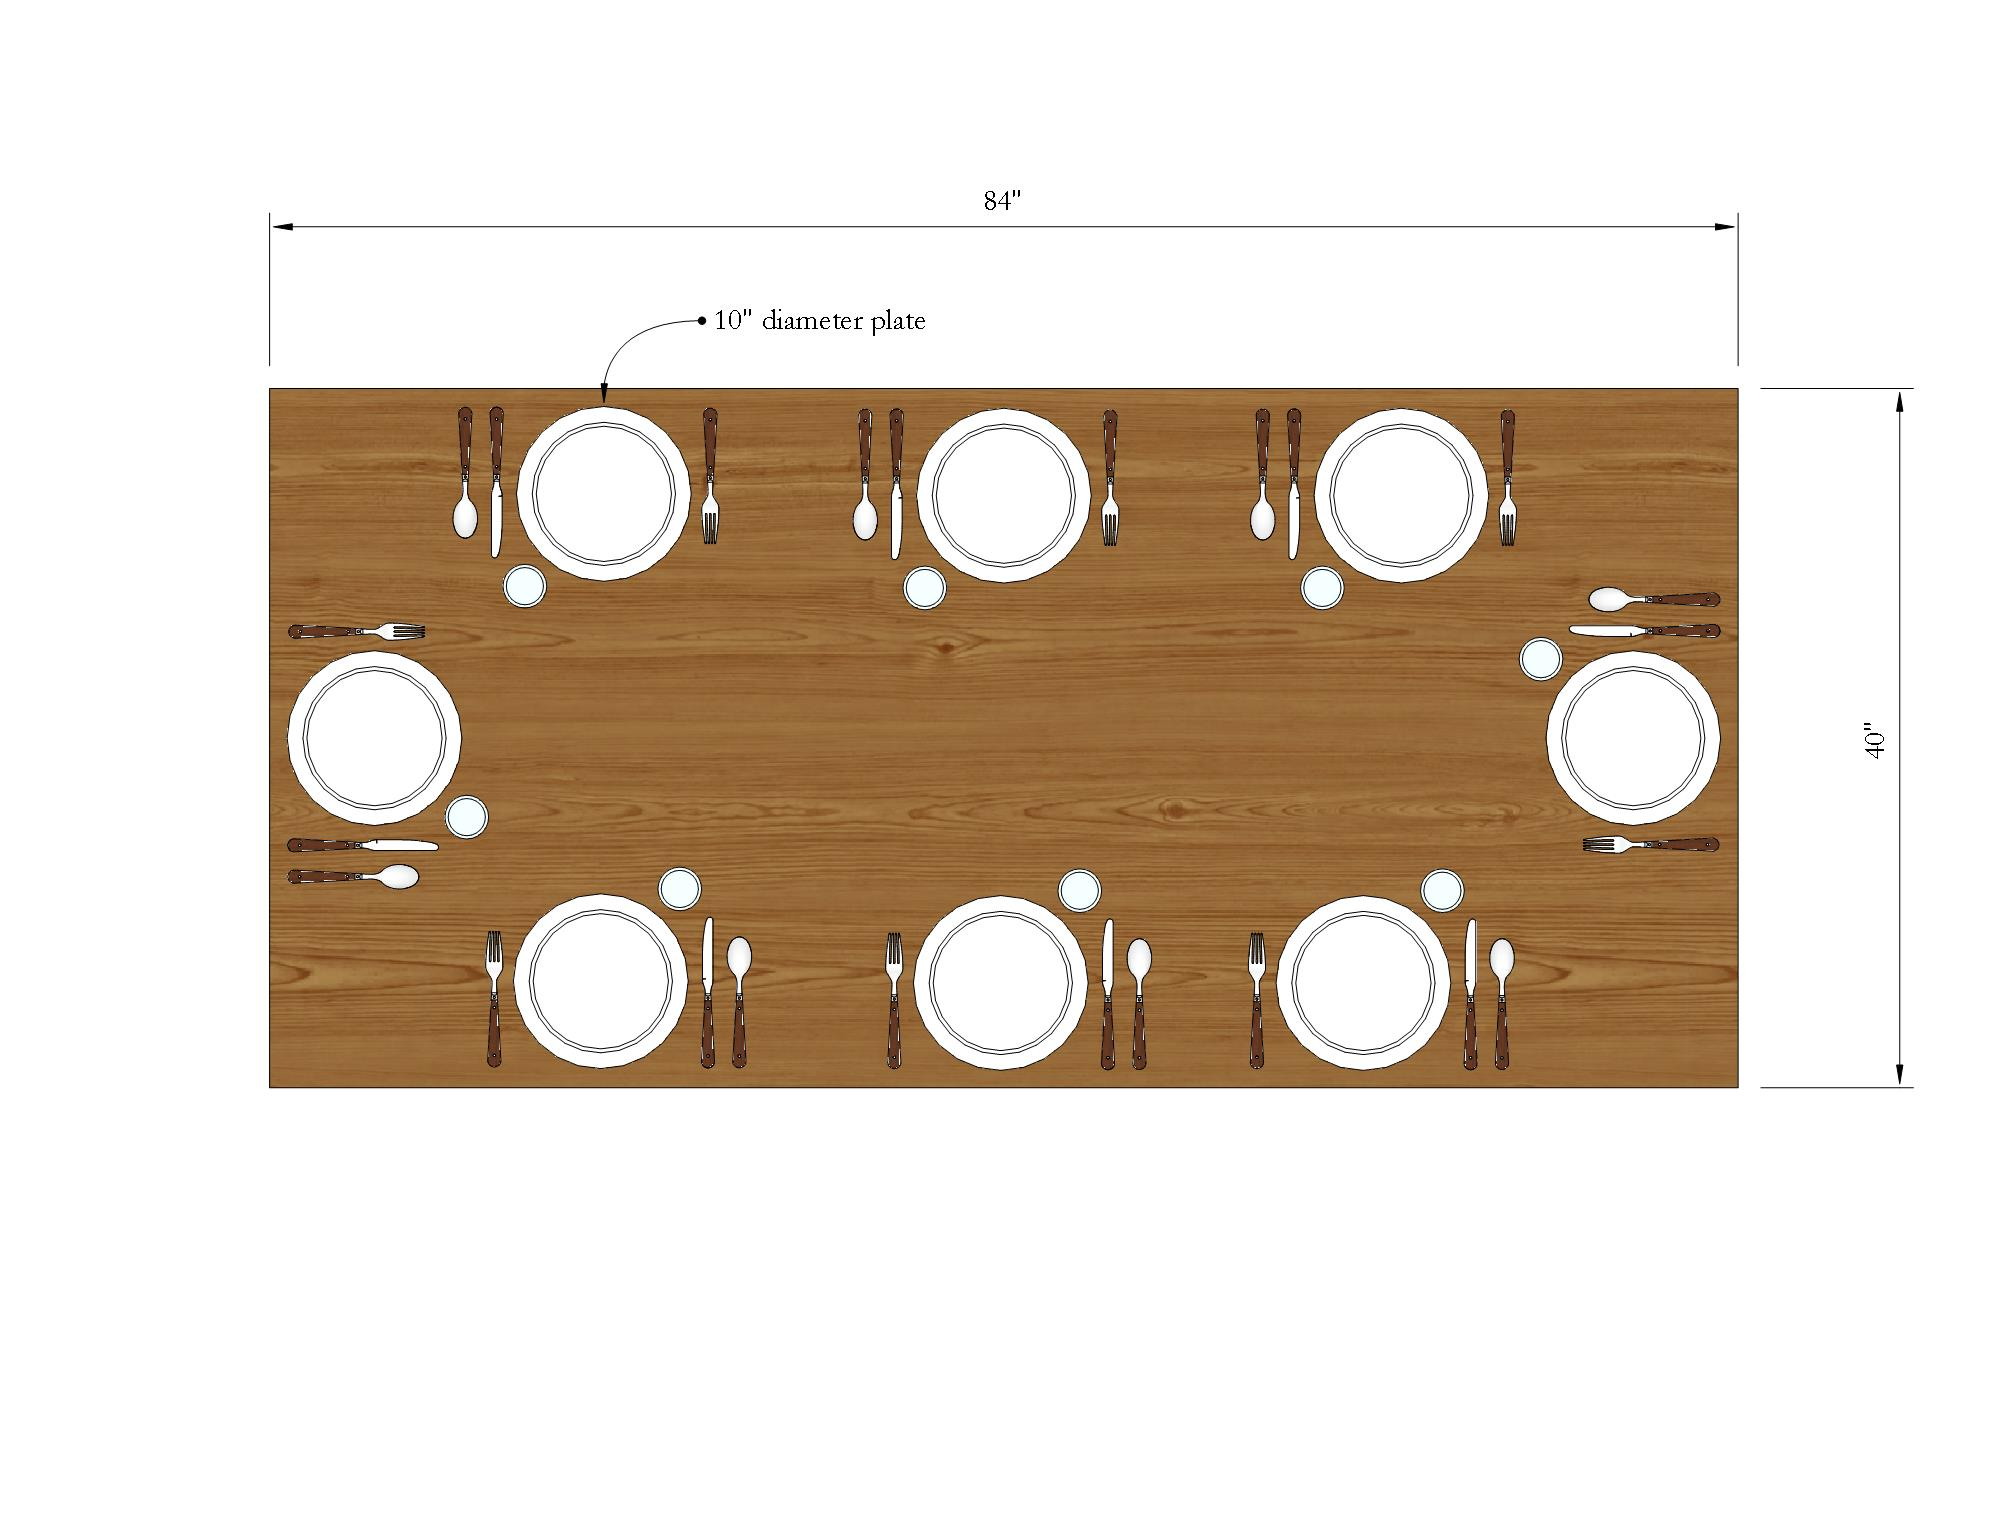 Dining-Table-Design-Guide_4.jpg